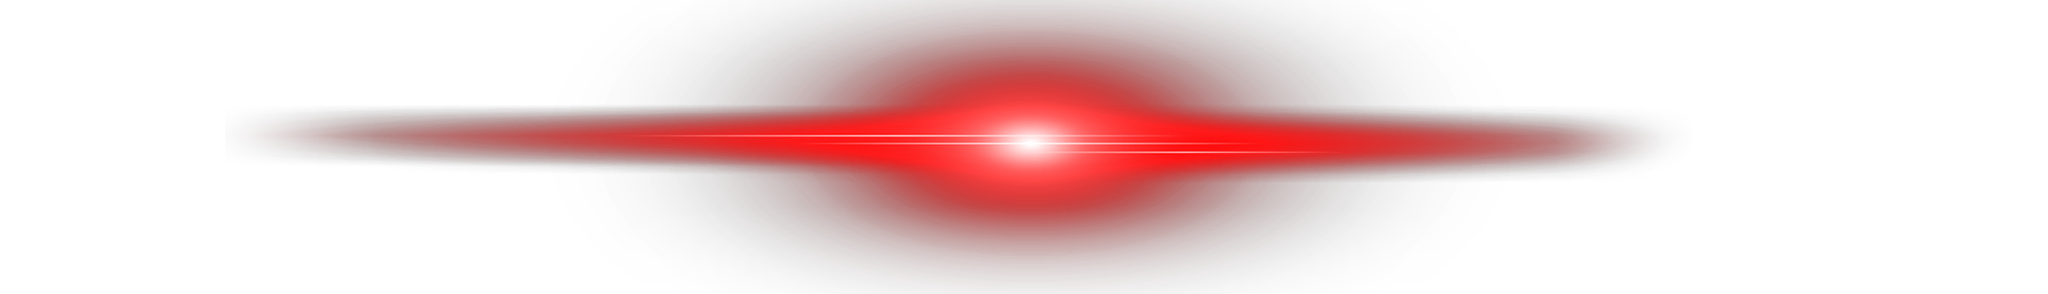 Red Lens Flare PNG Image Free Download searchpng.com.